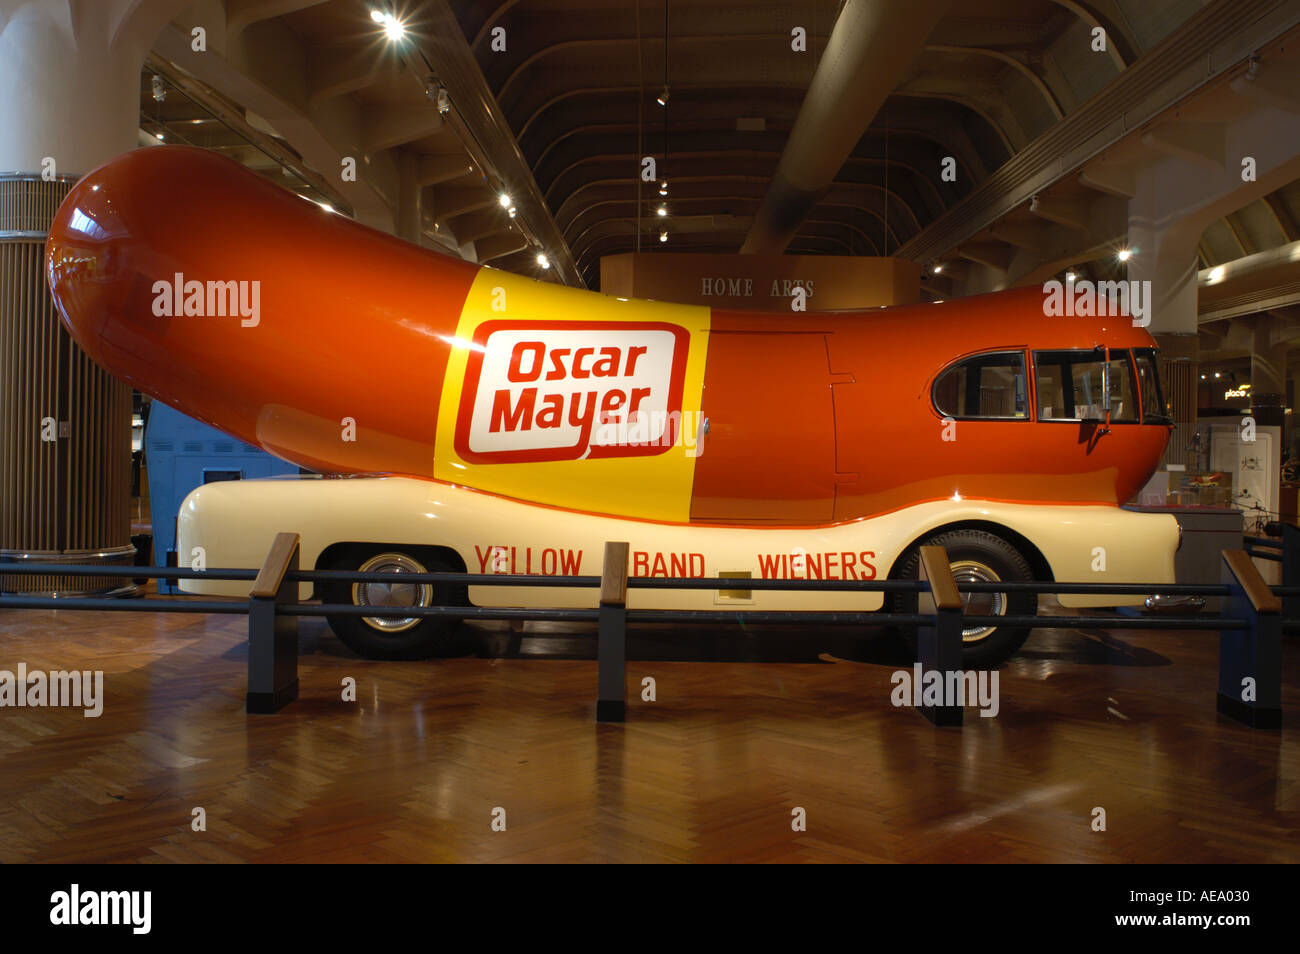 Hot Wheels Creator Harry Bradley Designed This 1990 Chevrolet 454 Ss Pickup 112761 besides Article 9831fb95 8ebe 5dc3 A1b5 184aa21ea18e together with Exfabulaallstars additionally 2014 Oscar Mayer Wienermobile First Vehicle For Lease Exclusively On Twitter moreover Work Home Jobs Great Benefits. on oscar mayer wienermobile side